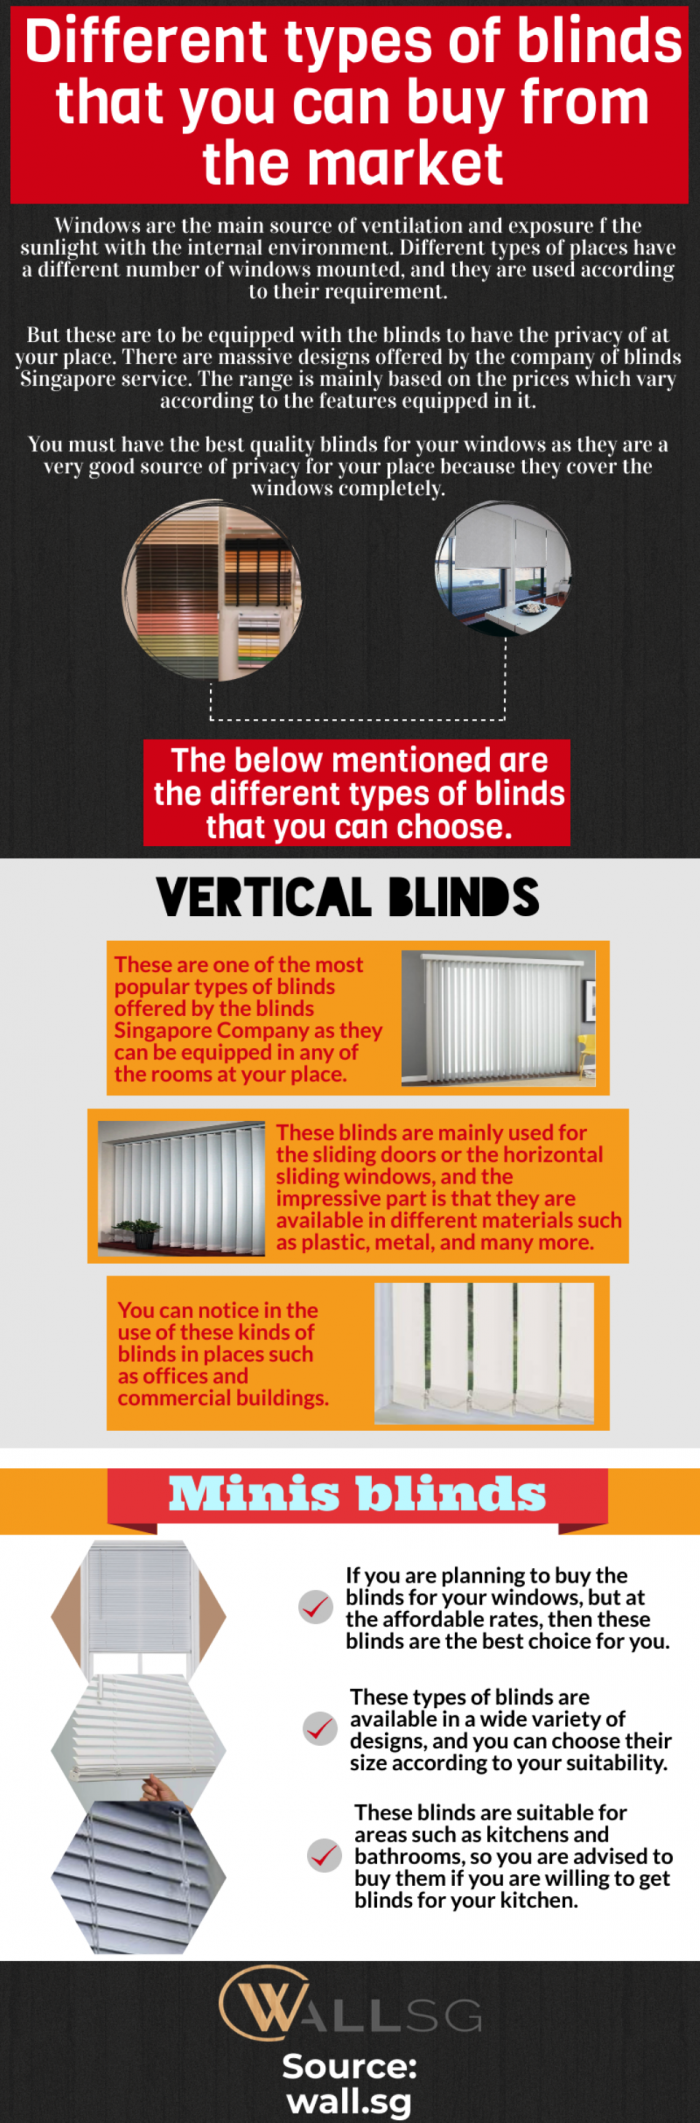 Get affordable blinds and curtains easily via online services